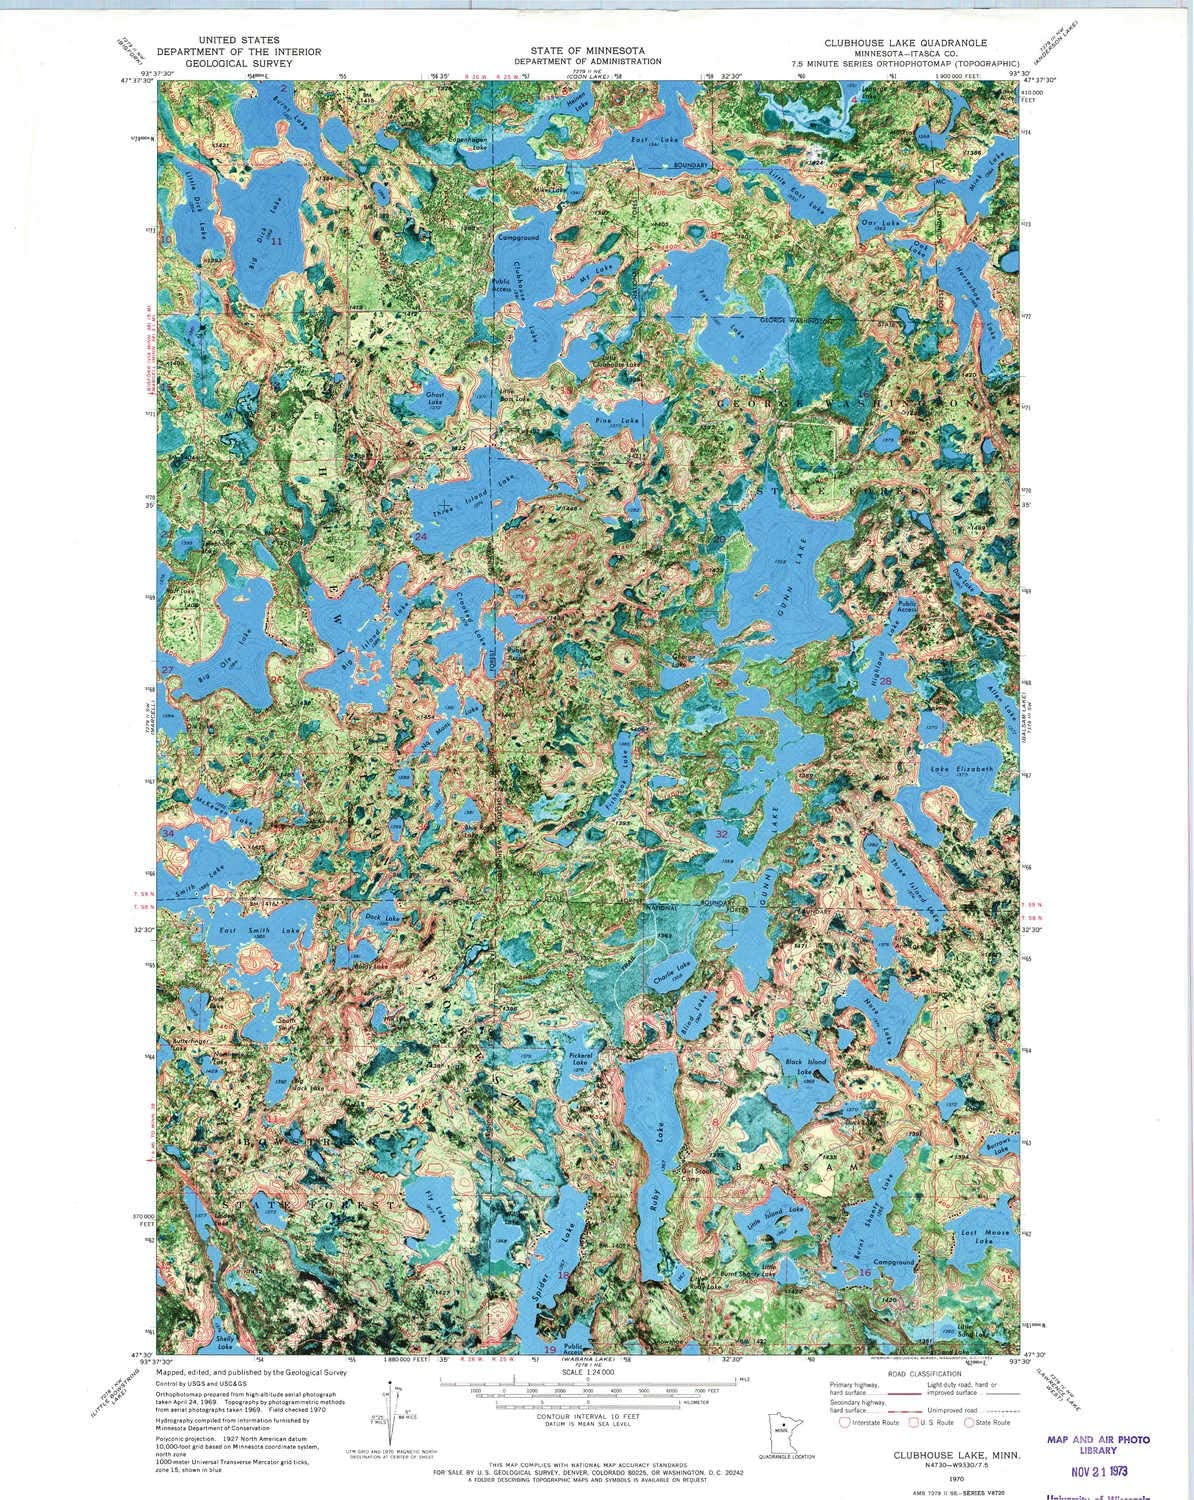 YellowMaps Clubhouse Lake MN topo Scale Popular products X Max 84% OFF 1:24000 map 7.5